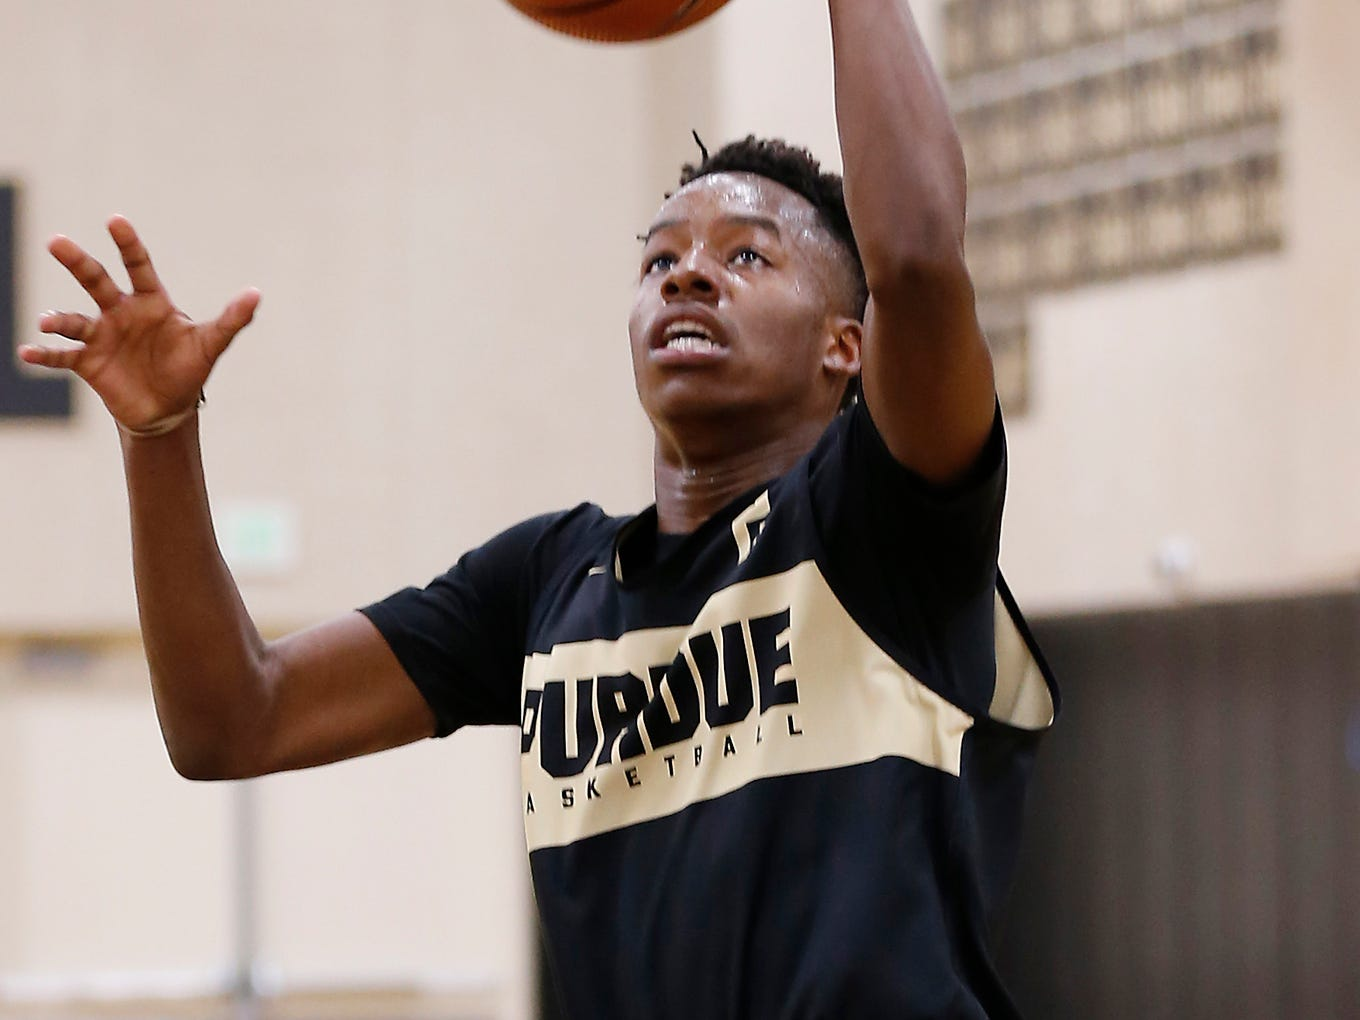 Eric Hunter Jr. with a layup during the first official practice of the season for Purdue men's basketball Tuesday, September 25, 2018, at Cardinal Court in Mackey Arena.